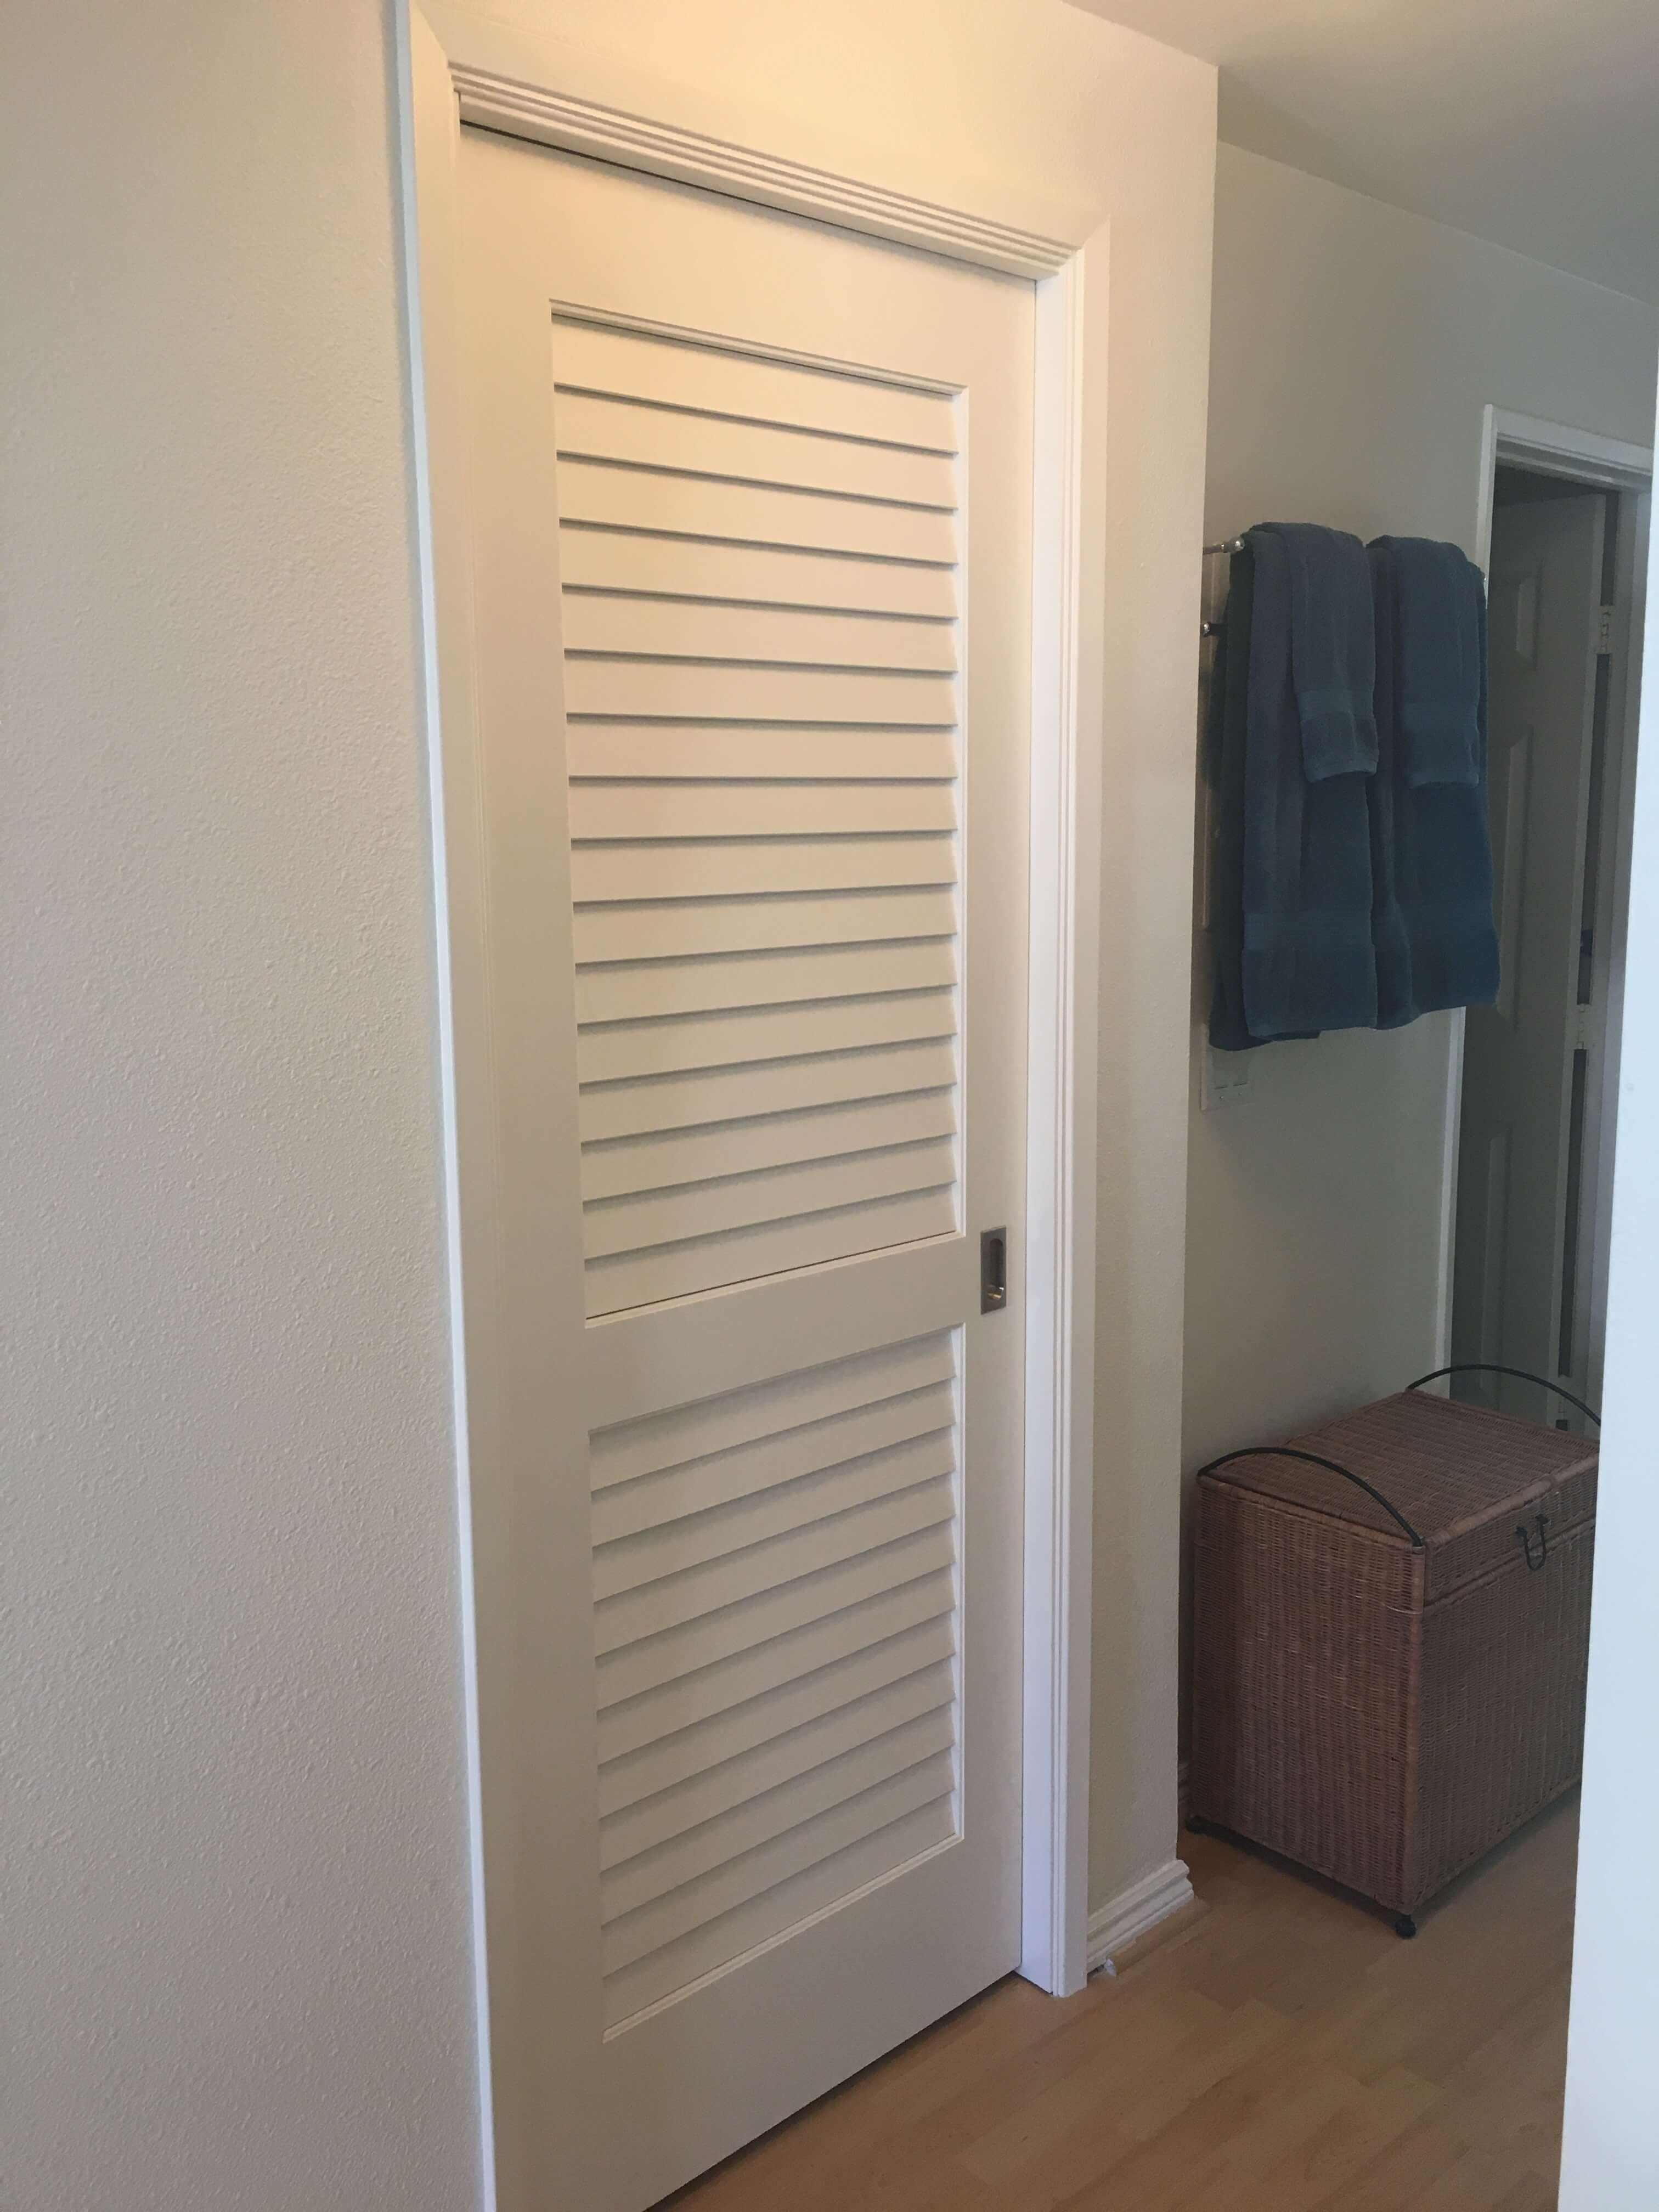 Walk-in closet door